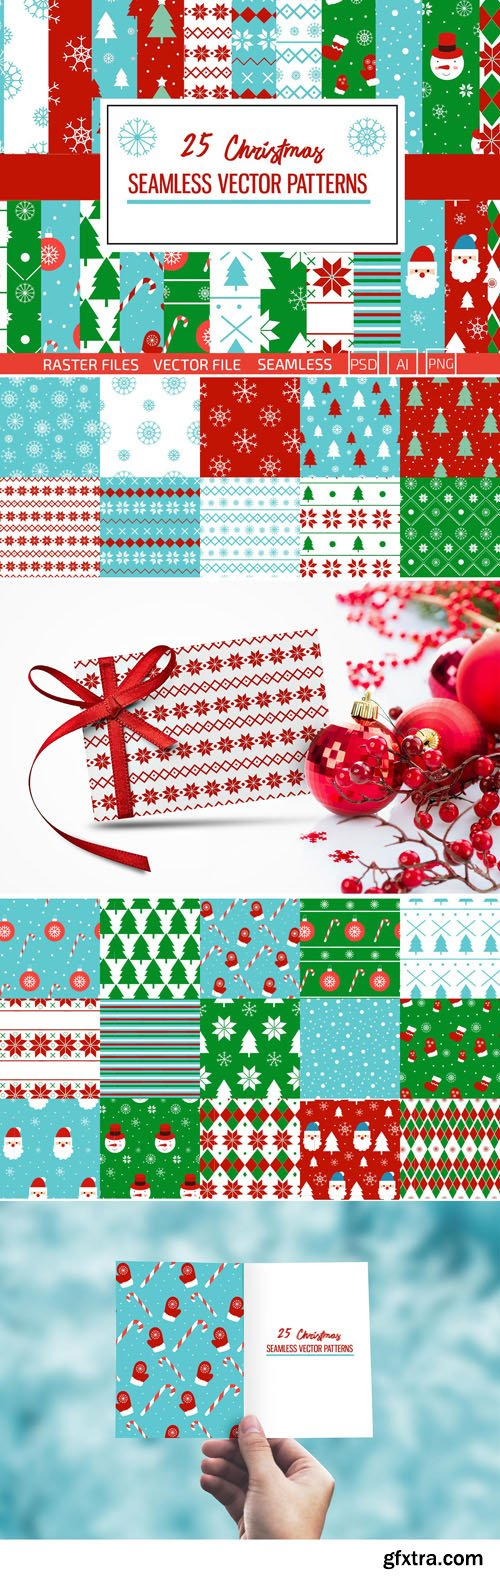 Christmas Patterns Vector Collection 3